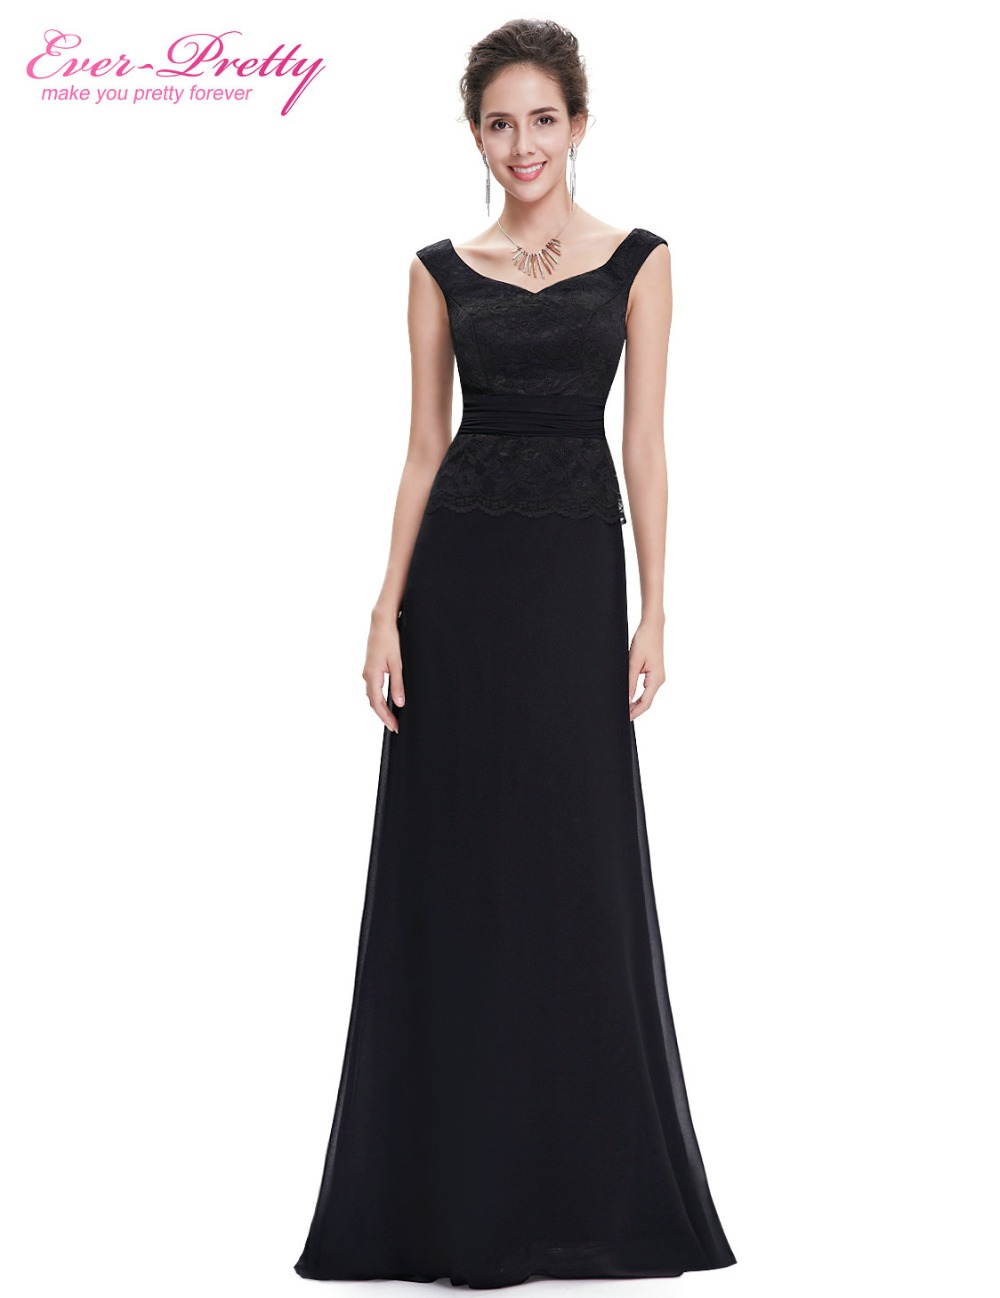 Clearance dresses are a great way to snag a really good deal while getting an amazing dress. Almost any style of dress will eventually end up on sale. Dresses on sale come in all of the shapes, styles, colors and sizes that regular priced dresses do.